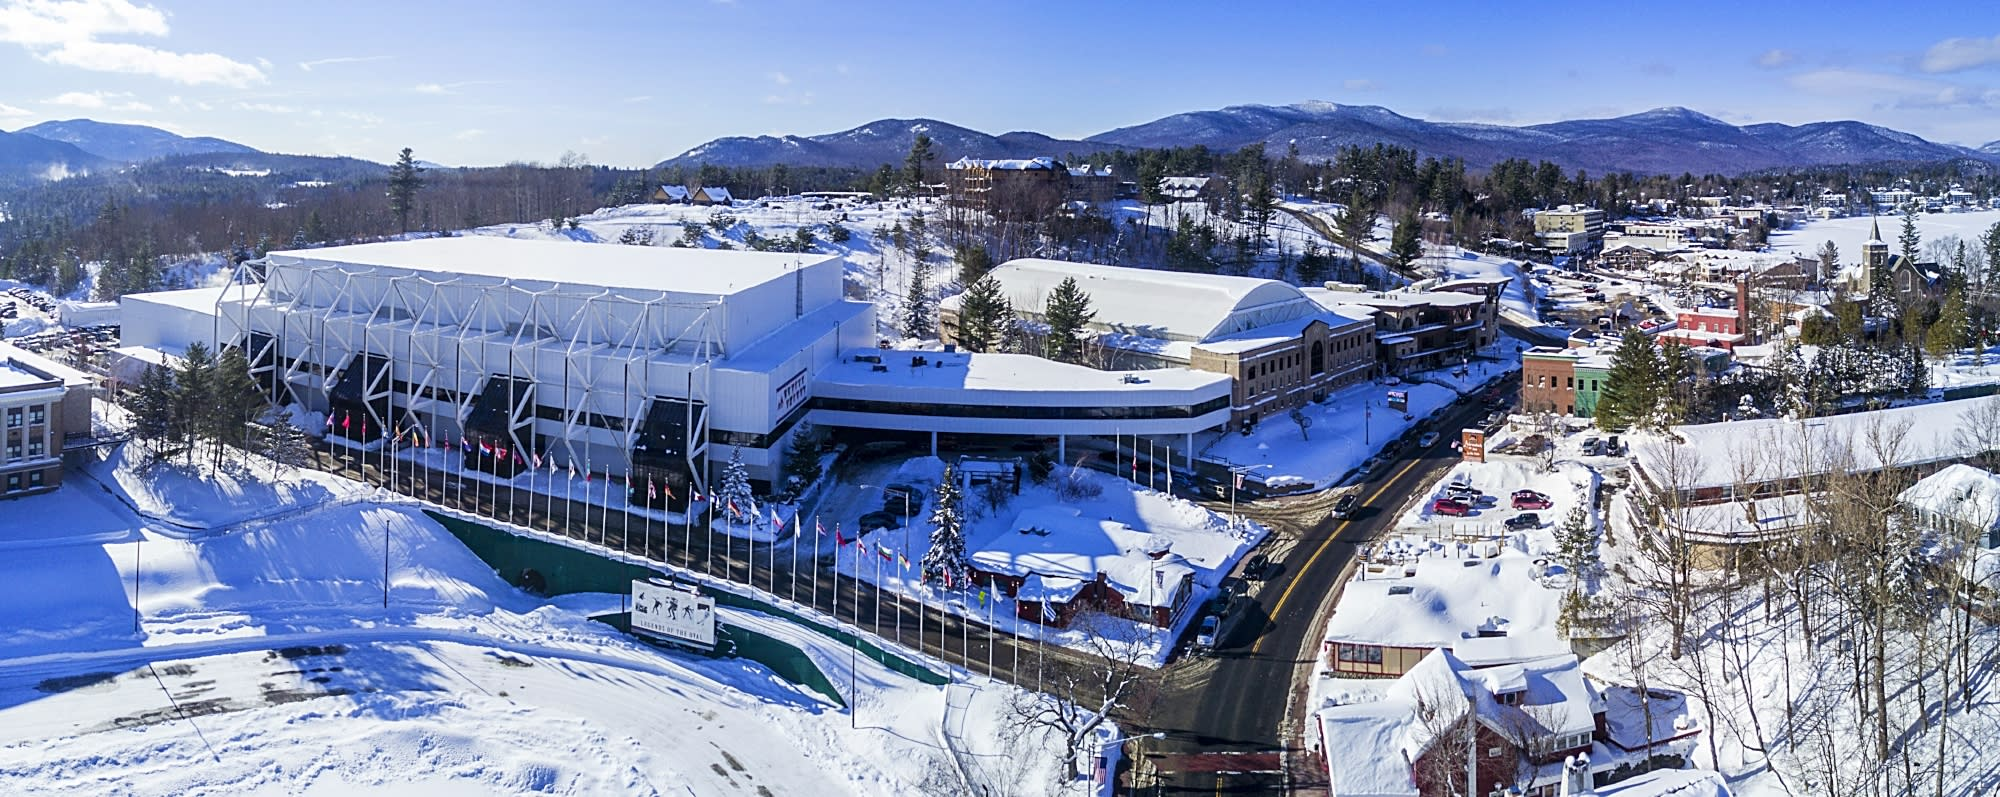 The Olympic Center is a sprawling campus on the outskirts of Lake Placid, NY.